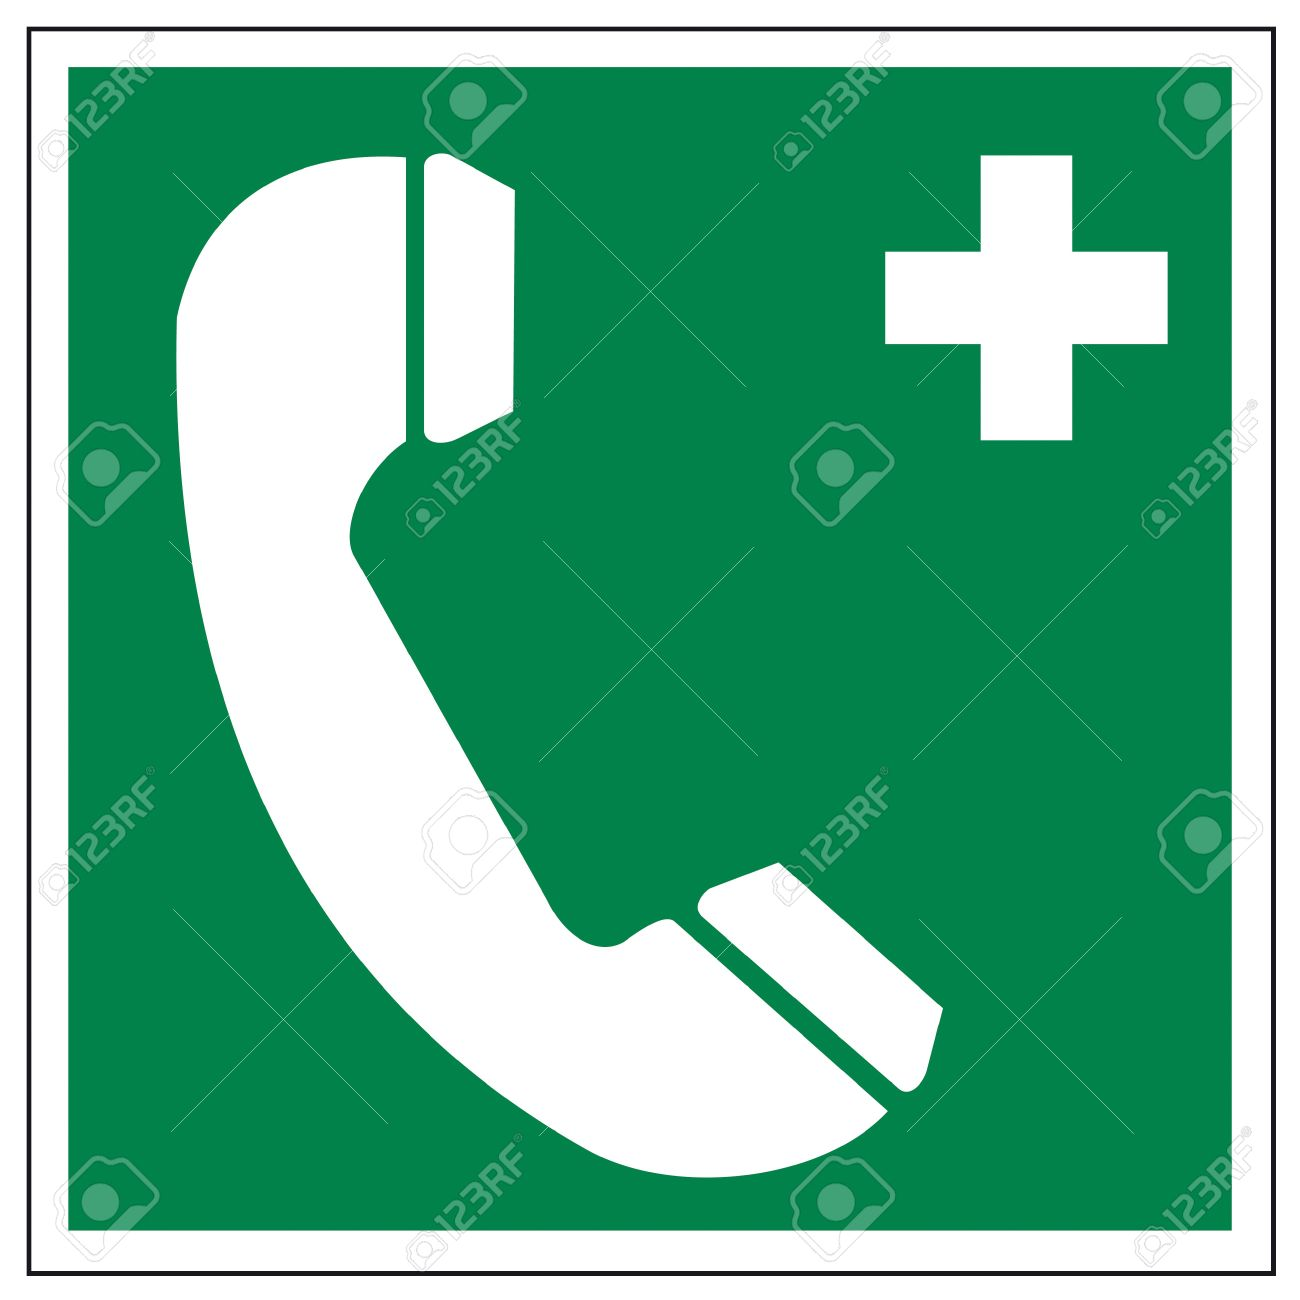 Rescue signs icon exit emergency ladder rescue phone Stock Vector - 14376905